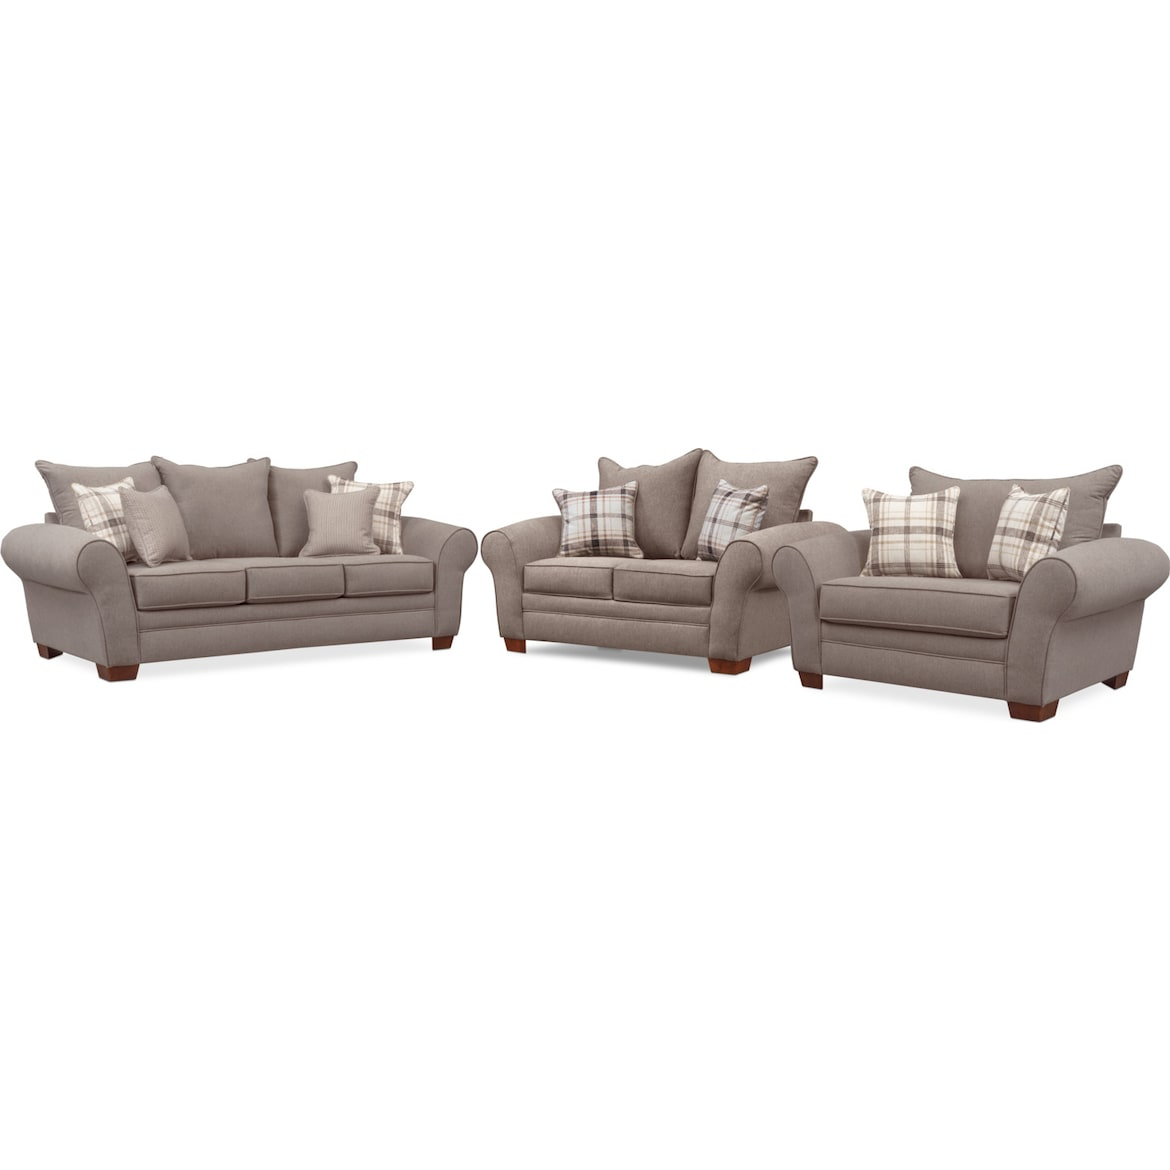 Prime Rowan Sofa Loveseat And Chair And A Half Beatyapartments Chair Design Images Beatyapartmentscom